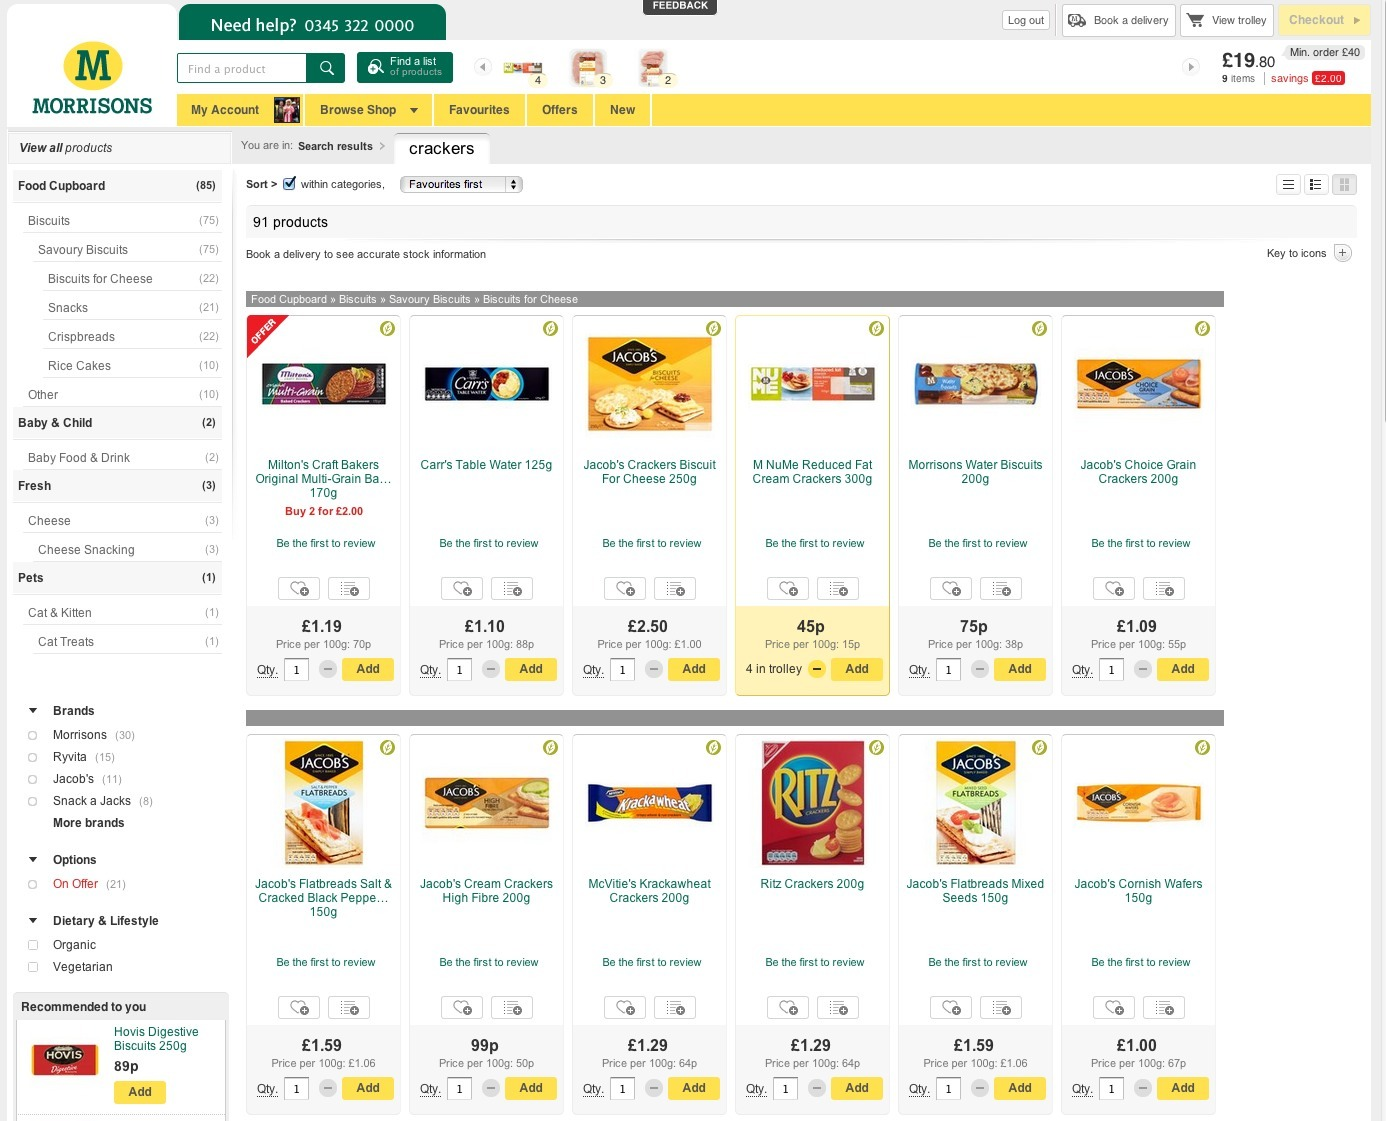 Morrisons launches first ecommerce store: is it any good? - Econsultancy